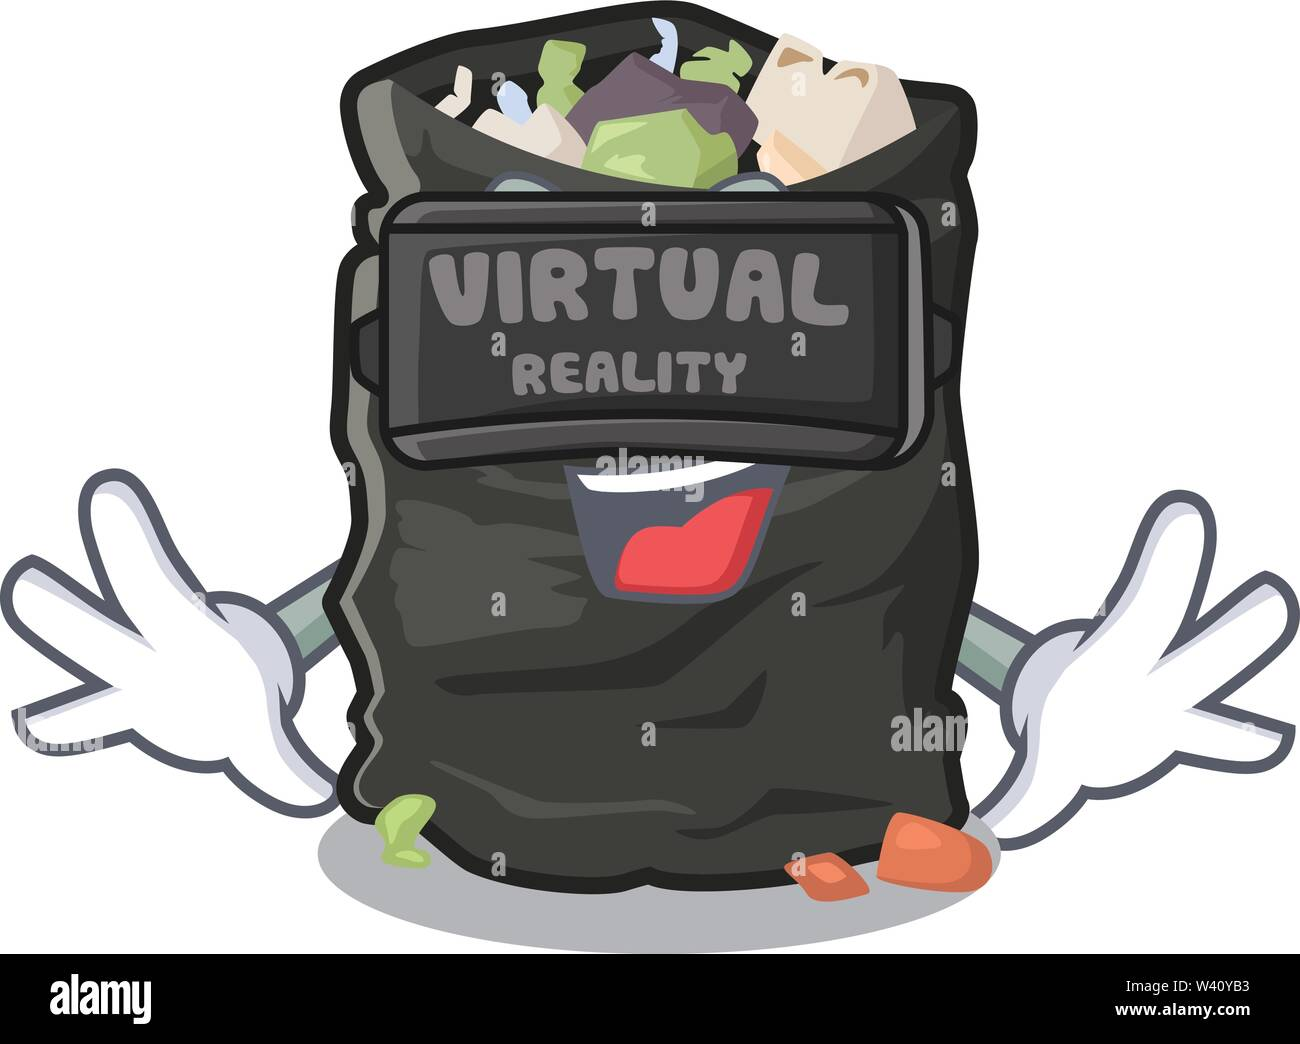 Virtual reality cartoon garbage bag next to table vector illustration - Stock Image